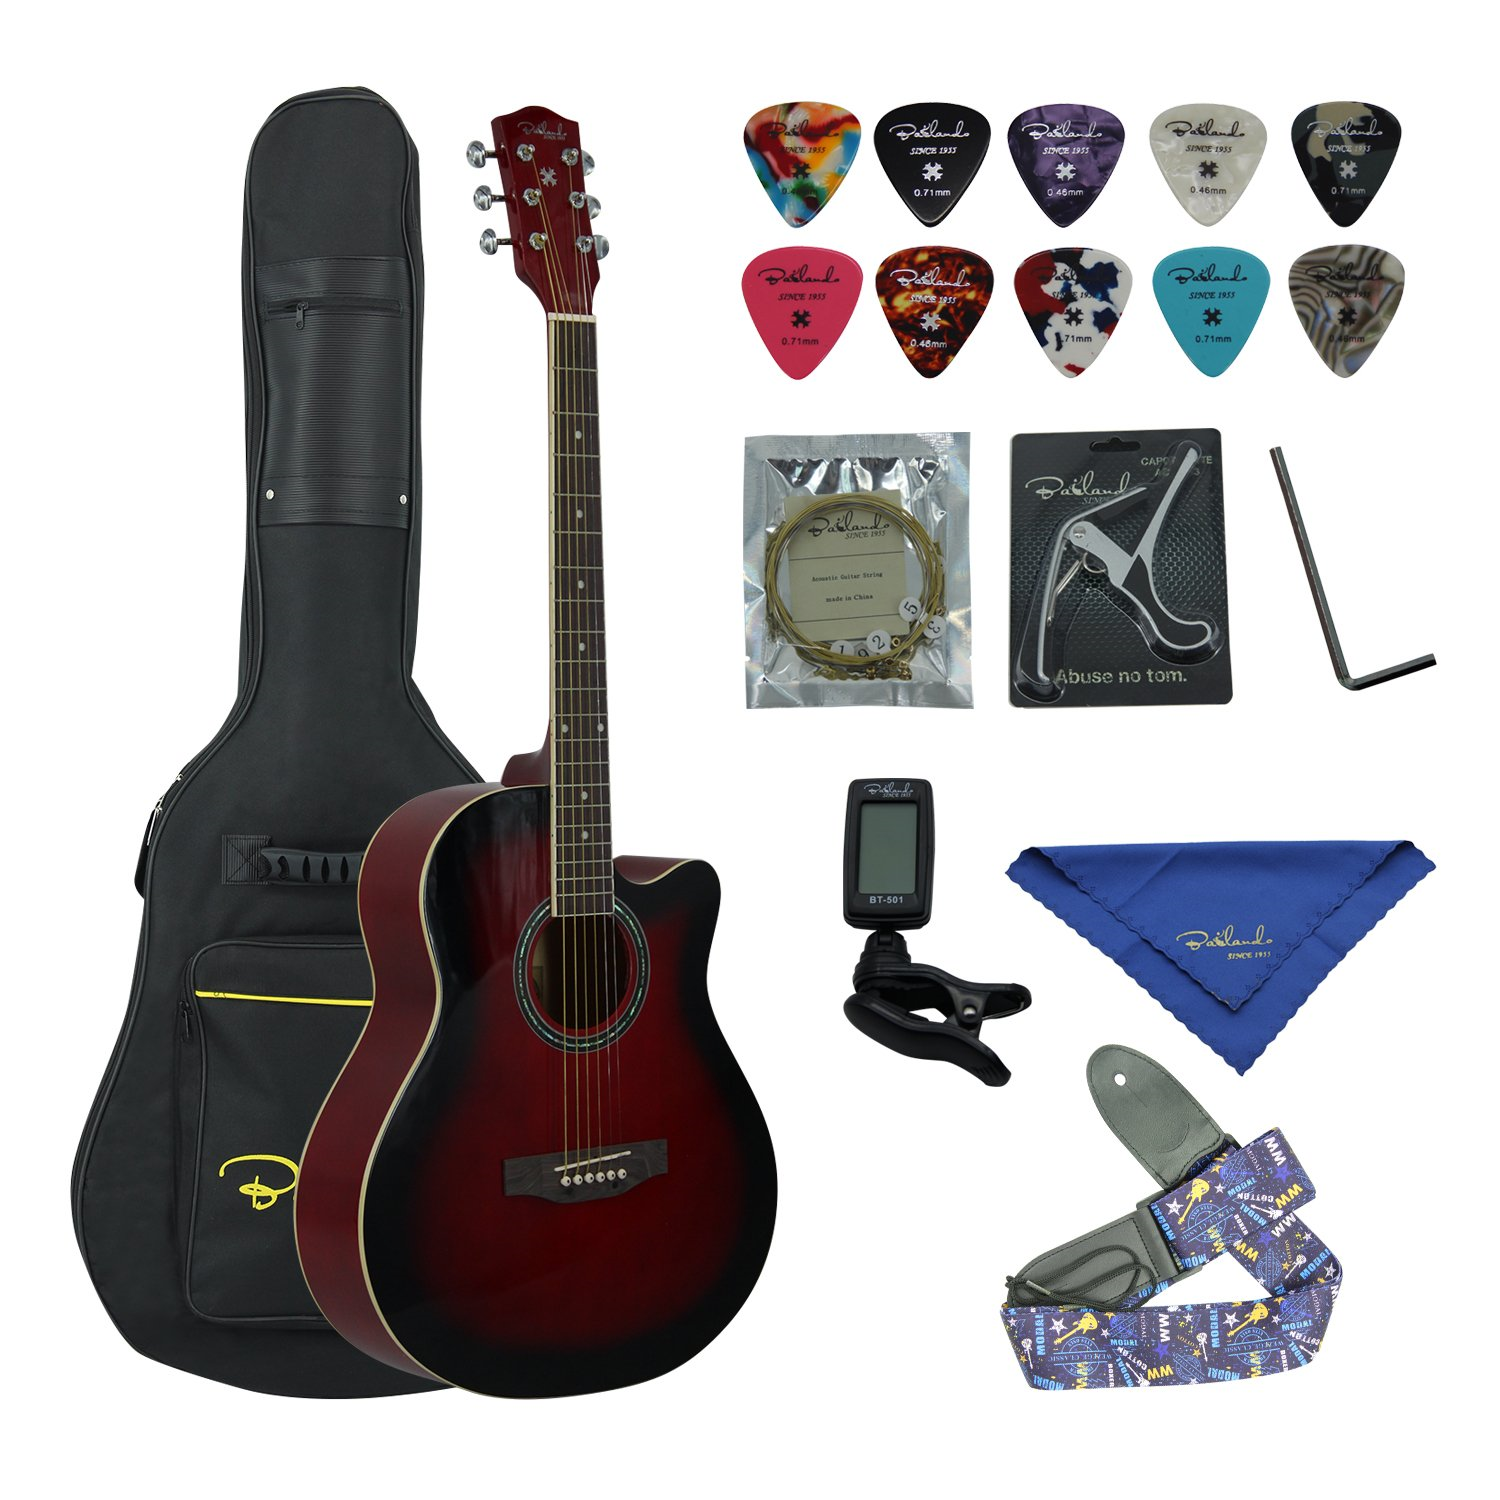 "Showing all the Contents of the Redburst Bailando 40"" Cutaway Acoustic Guitar Beginner Bundle"